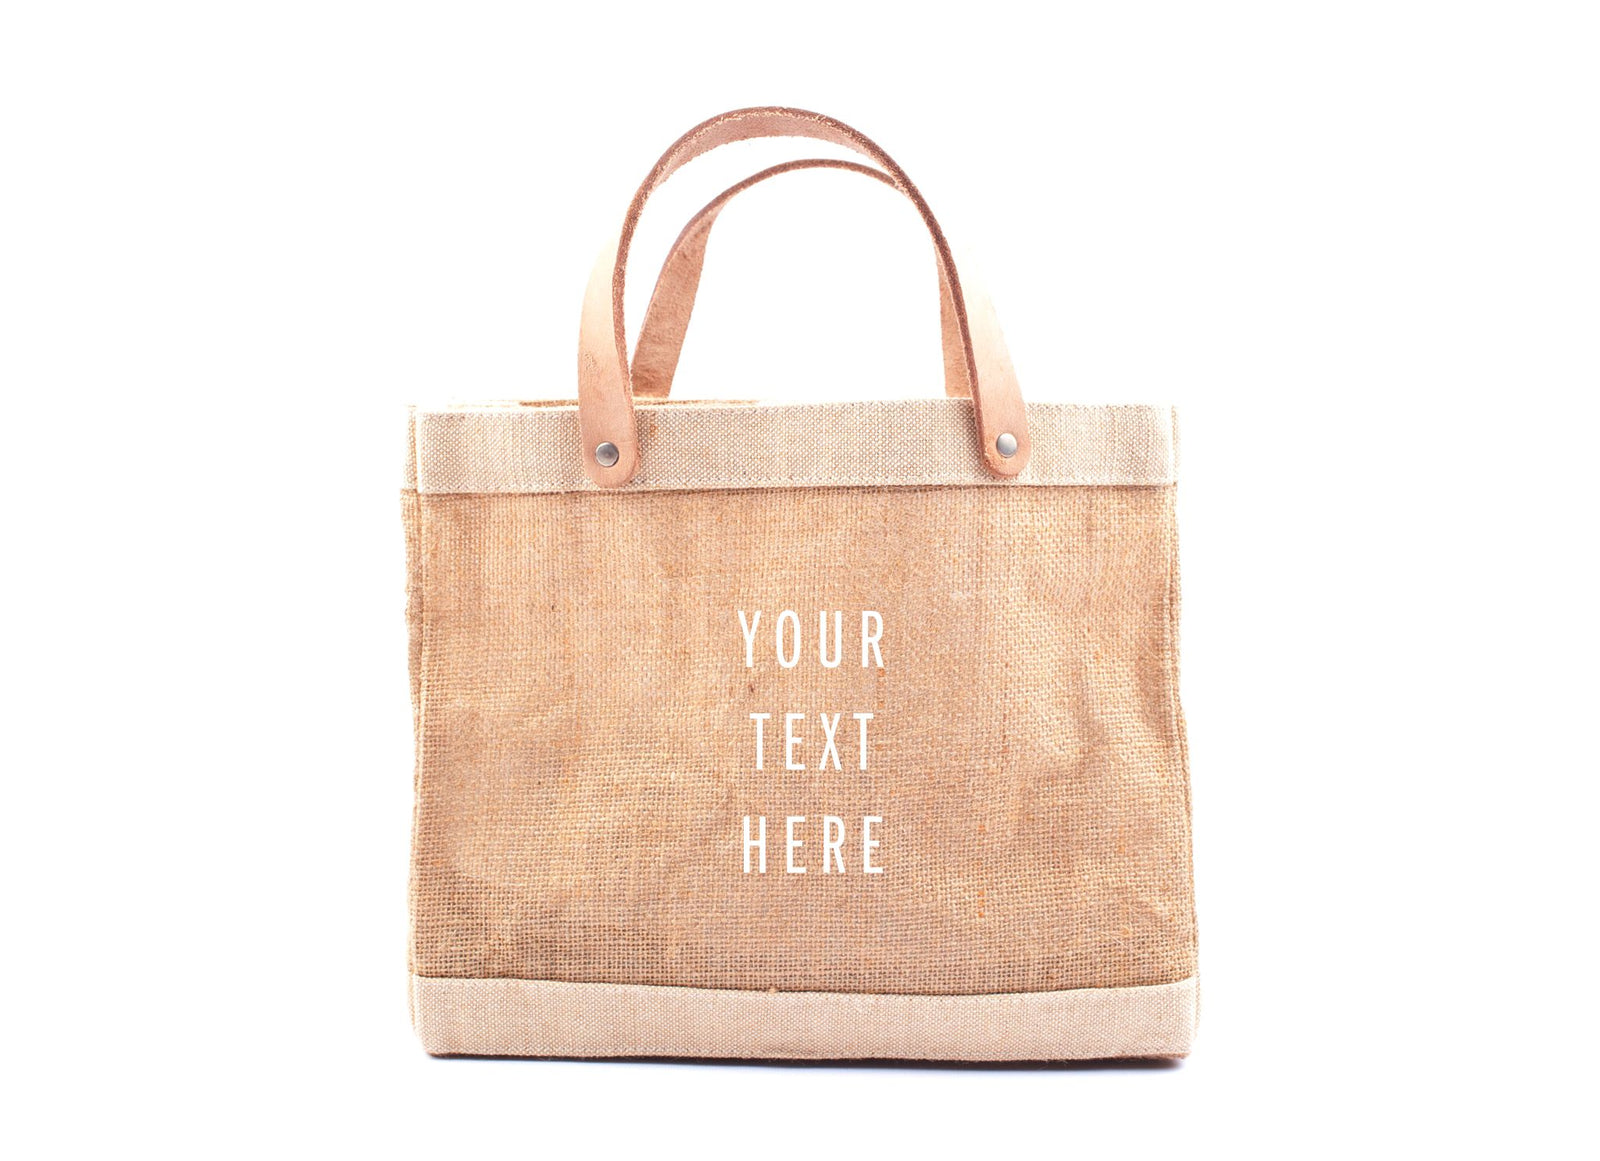 Customized Petite Market Bag in Natural - Wholesale